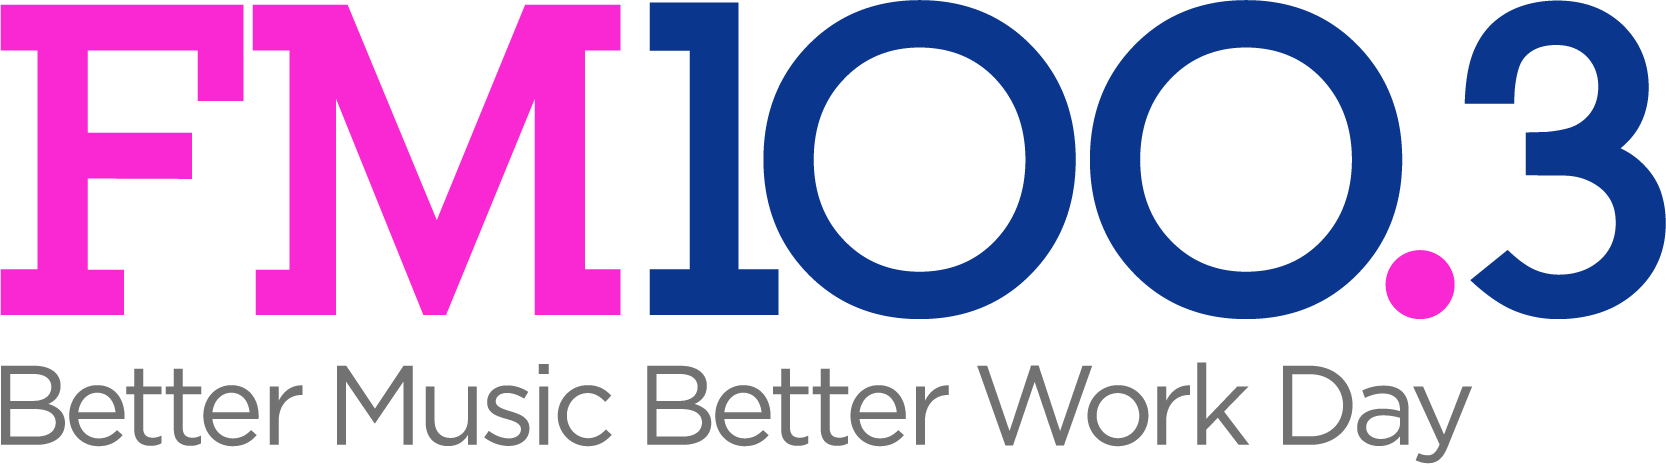 Listen LIVE - FM 100.3 - Better Music Better Work Day